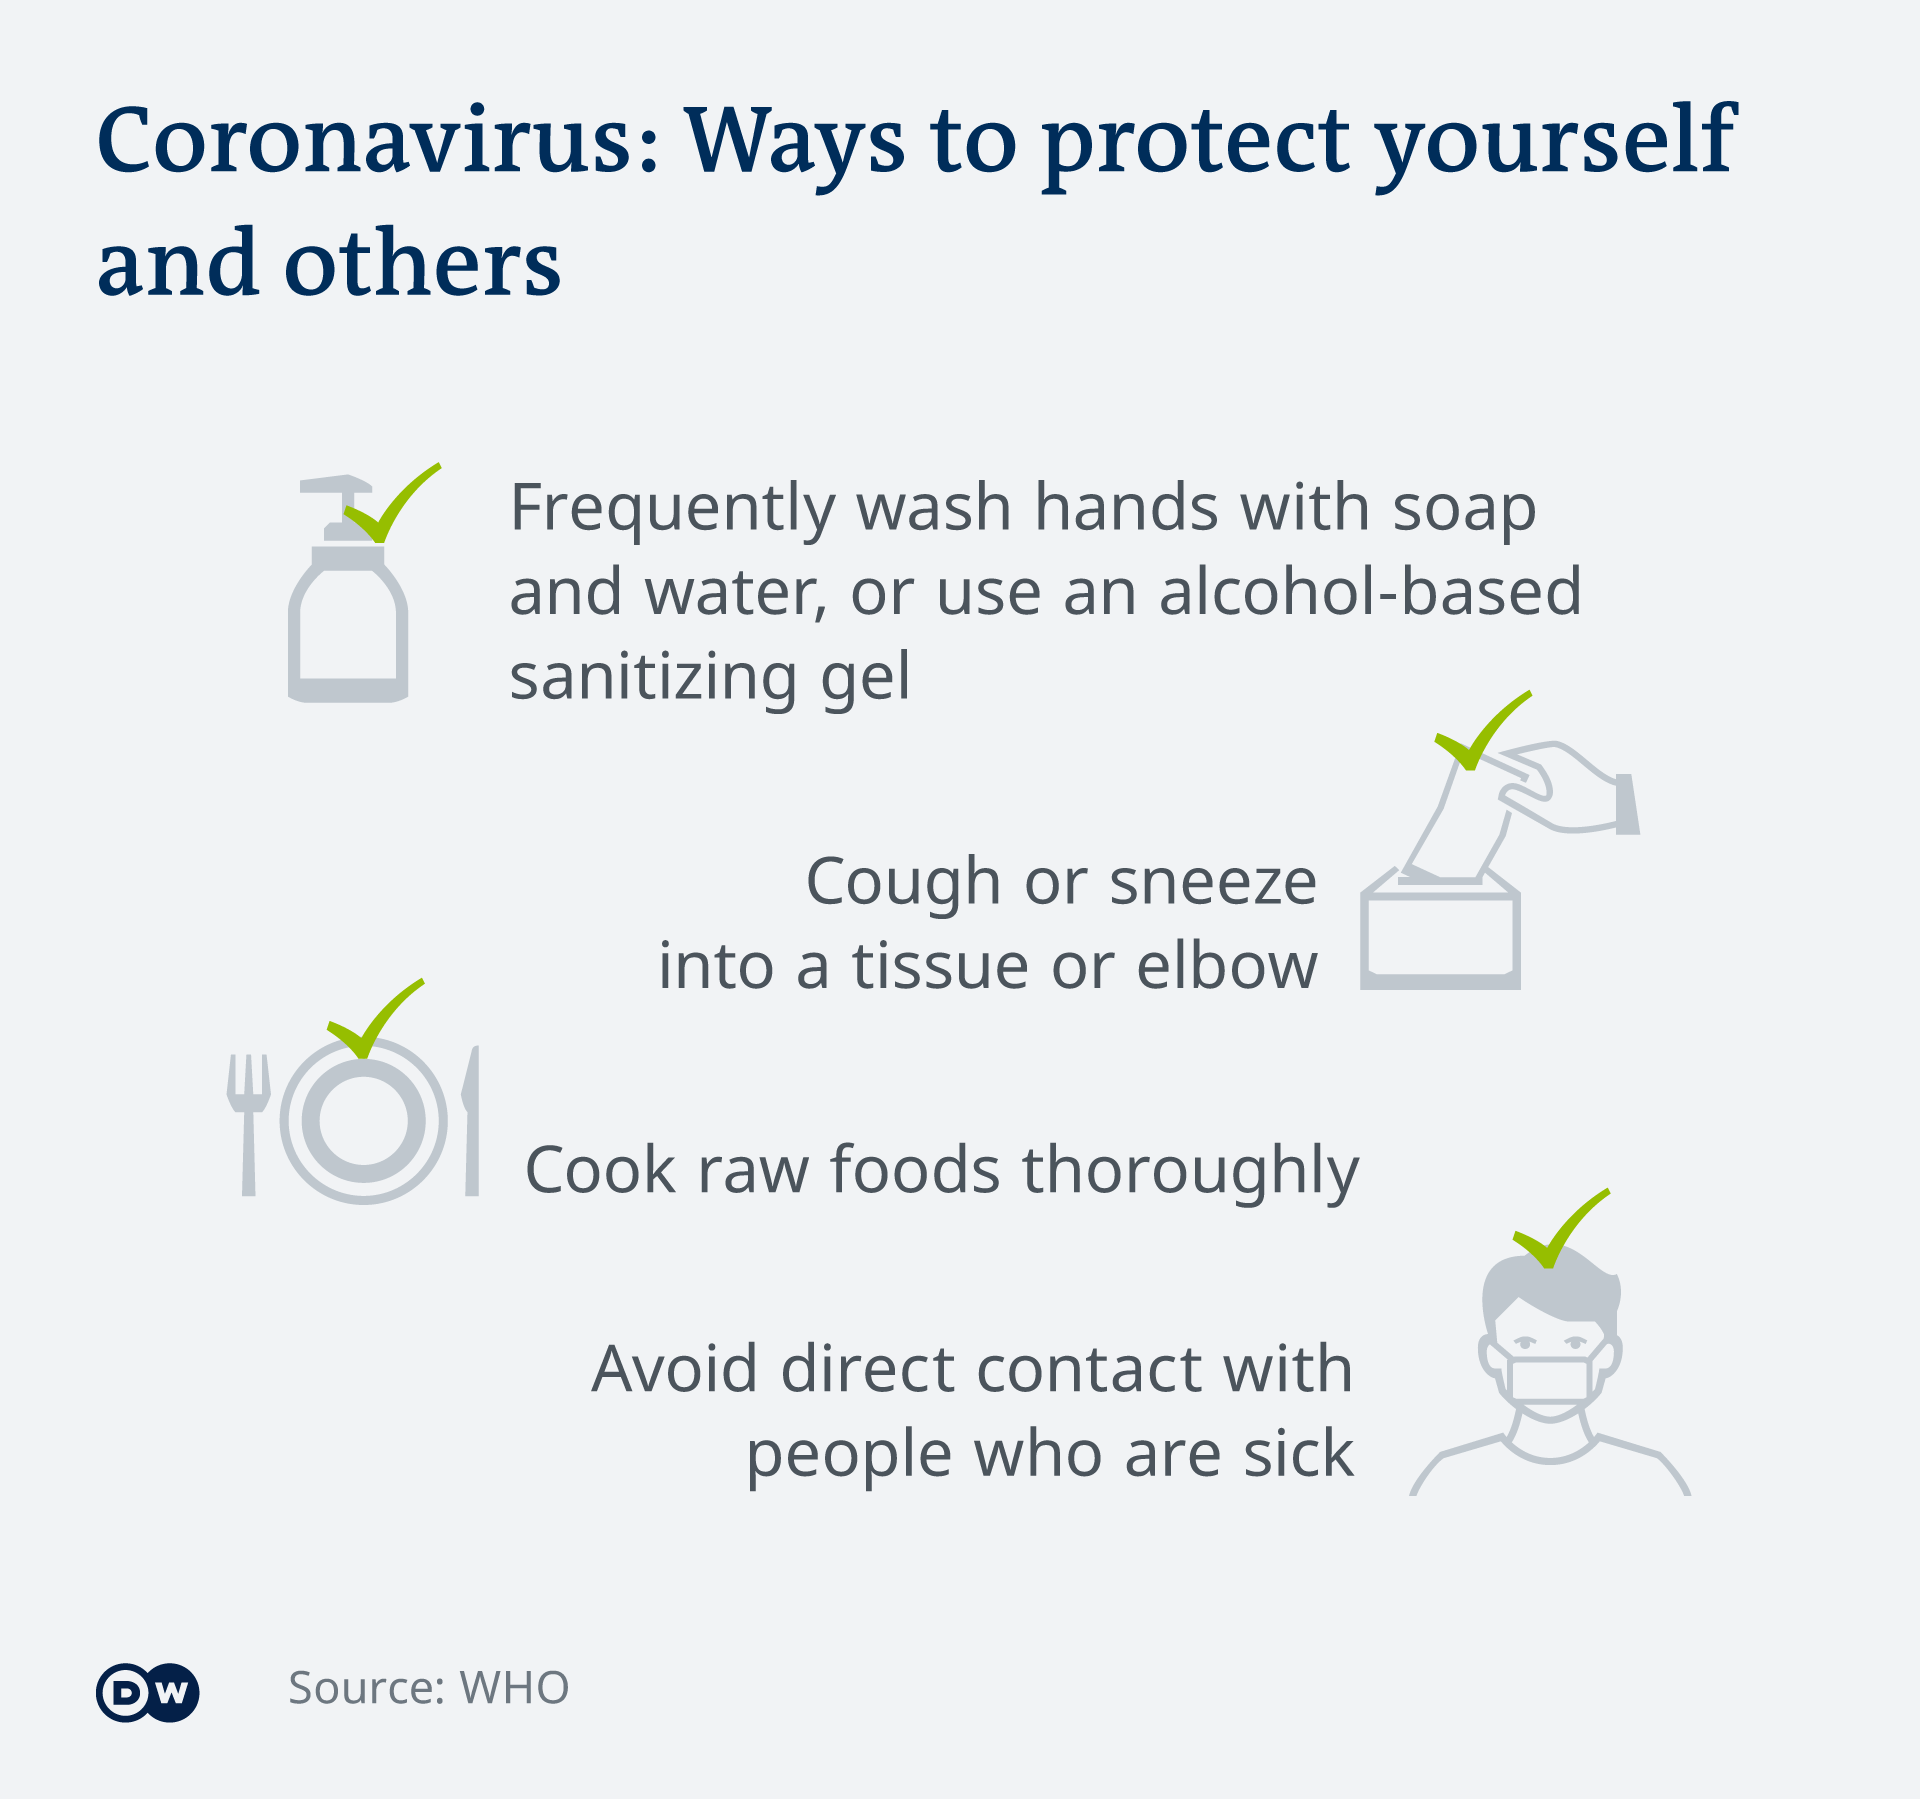 COVID-19 updates: Germany facing a ′coronavirus epidemic′ | News ...